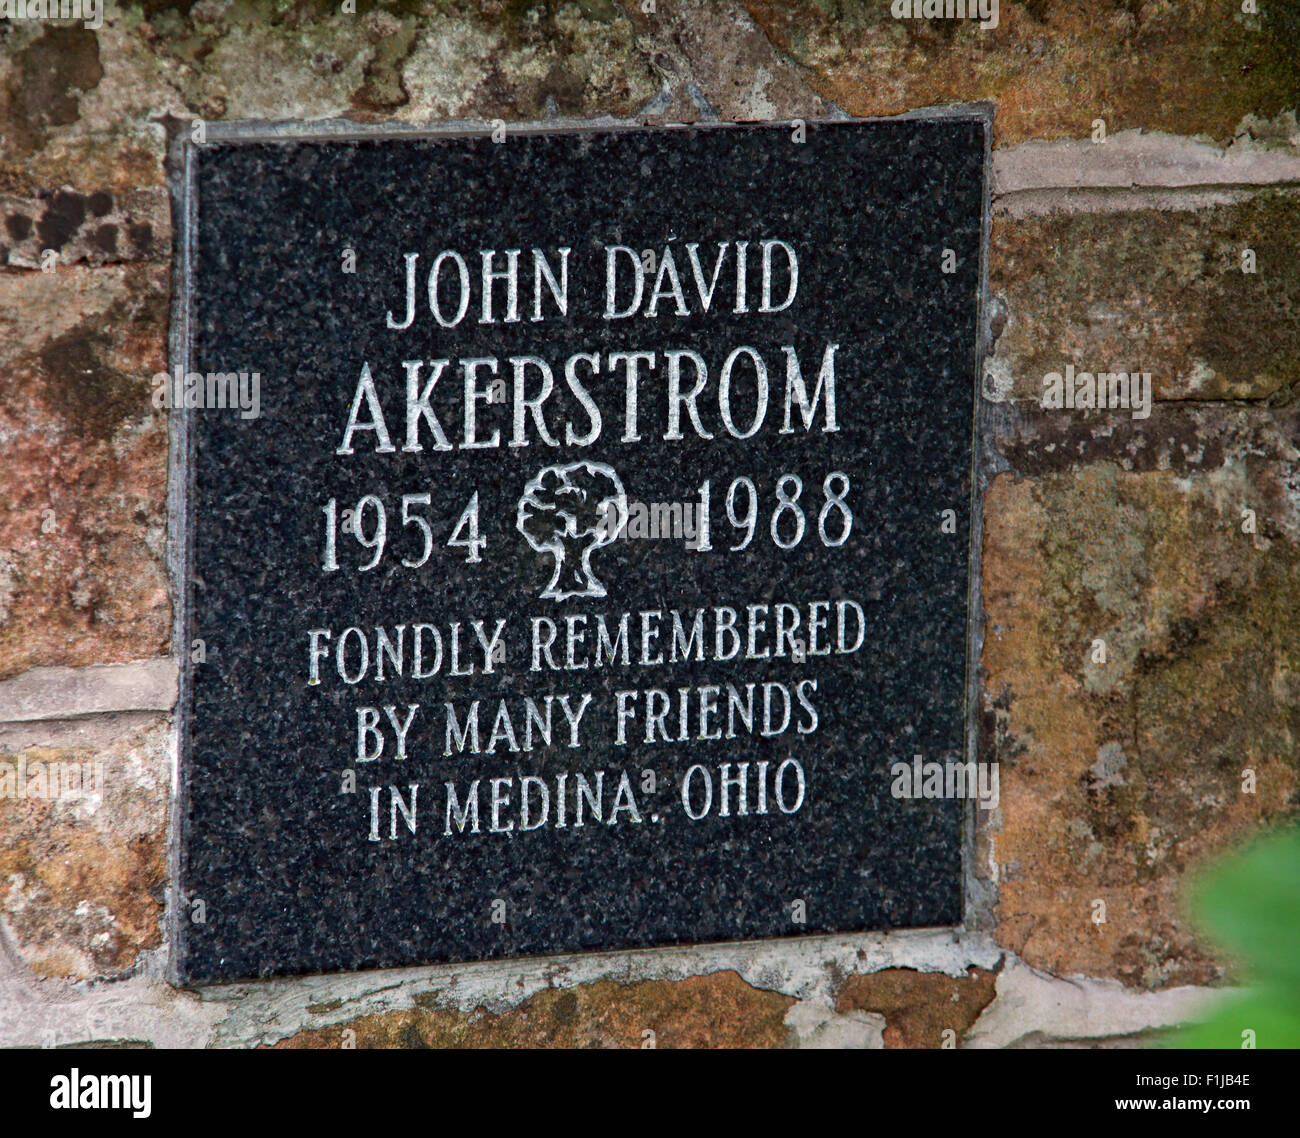 Lockerbie PanAm103 In Rememberance Memorial John David Akerstrom, Scotland Stock Photo